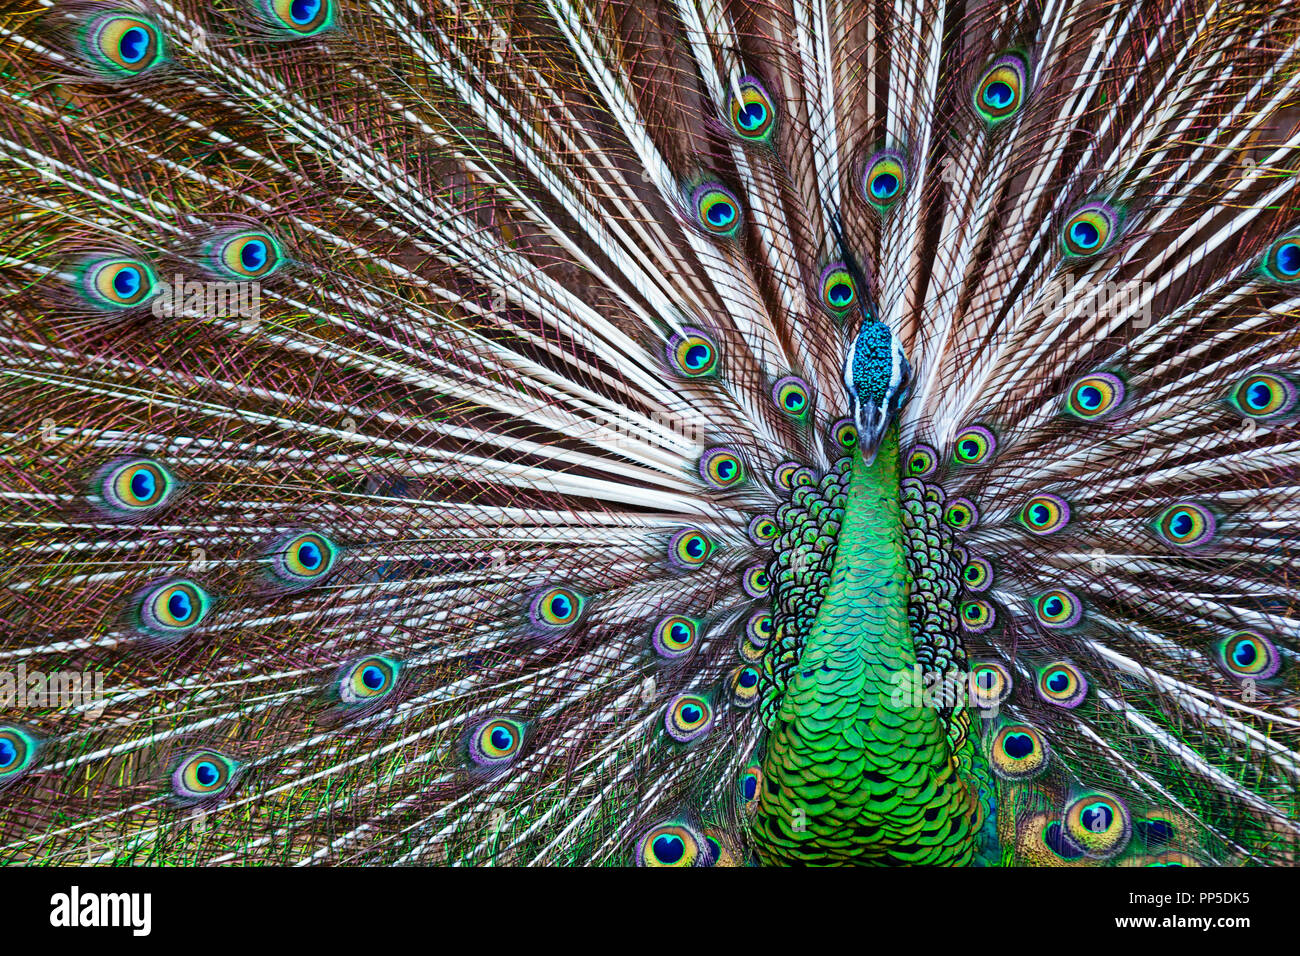 Portrait of wild male peacock with fanned colorful train. Green Asiatic peafowl display tail with blue and gold iridescent feather. - Stock Image